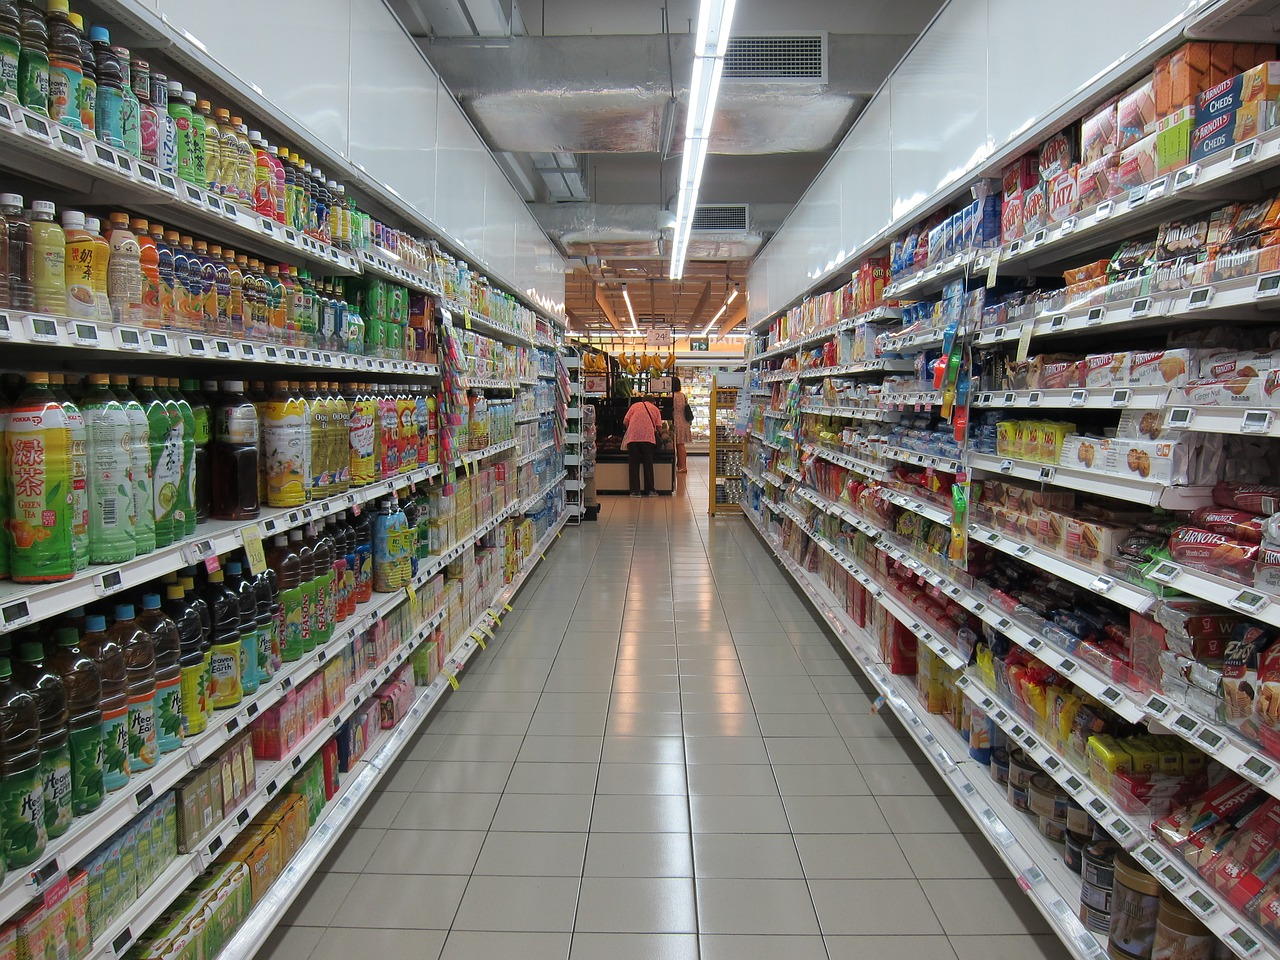 what's the best grocery store, price-wise?